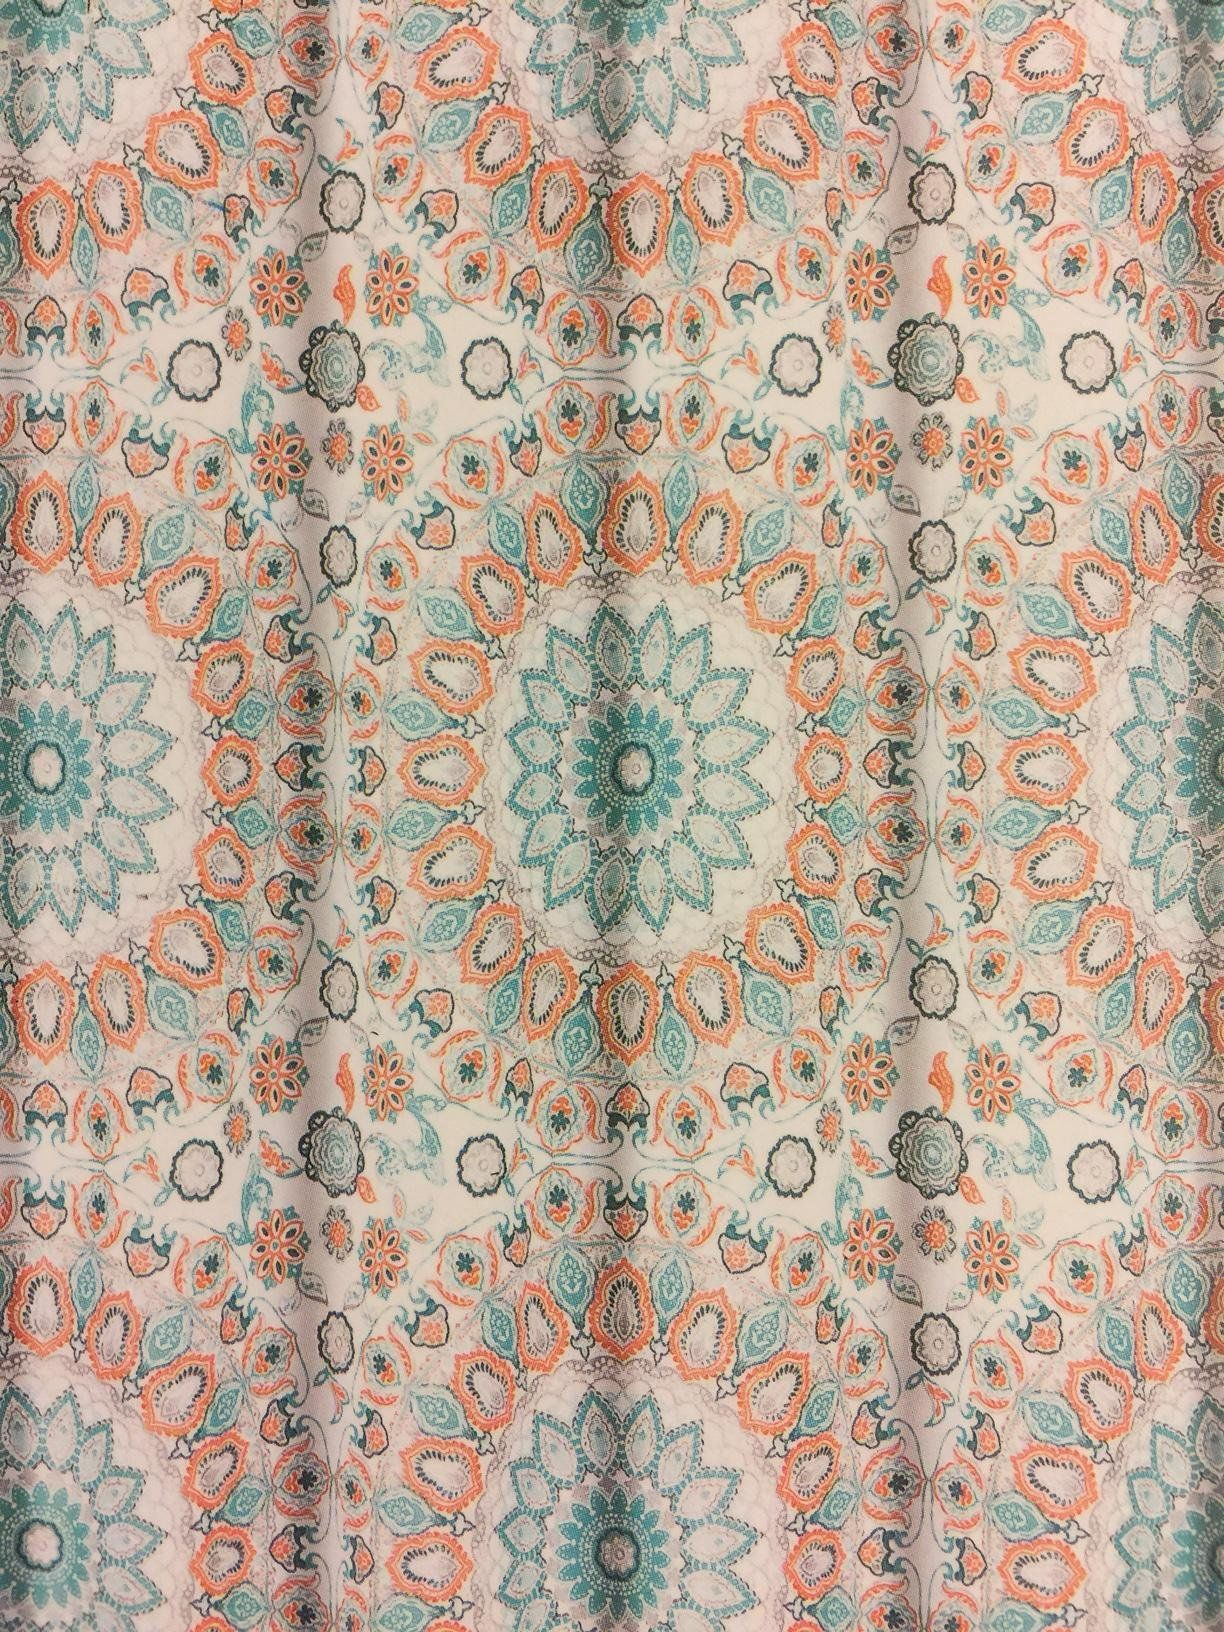 Cynthia rowley medallion shower curtain - Cynthia Rowley Teal Turquoise And Tangerine Tapestry Medallion Shower Curtain